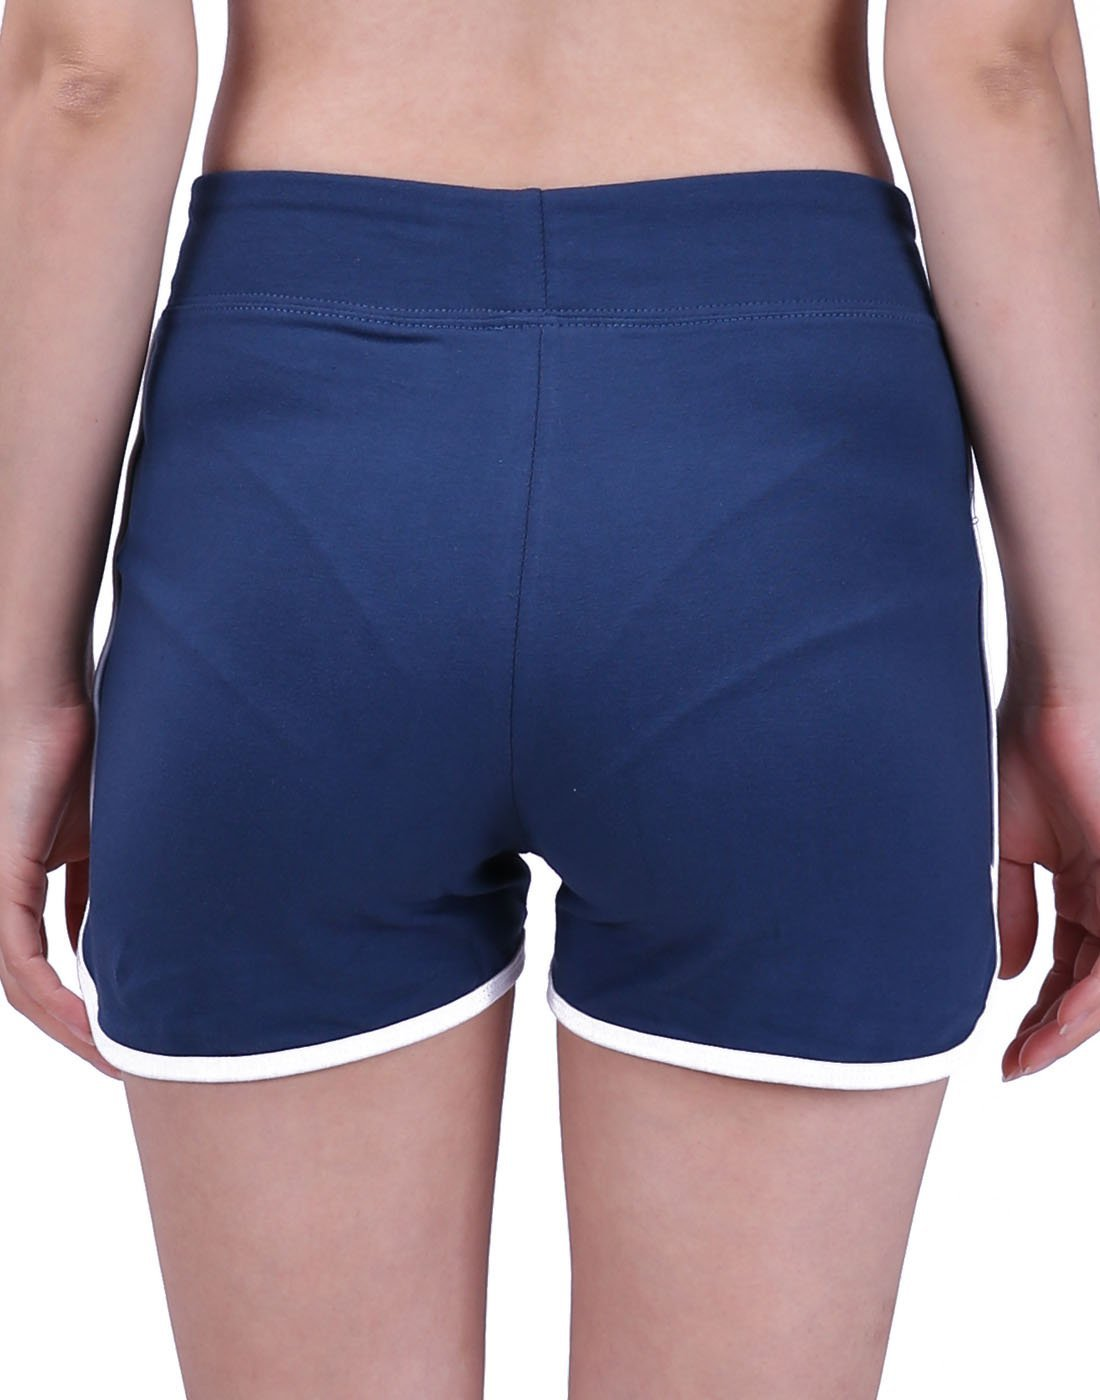 HDE Women's Retro Fashion Dolphin Running Workout Shorts (Midnight Blue, Medium) by HDE (Image #4)